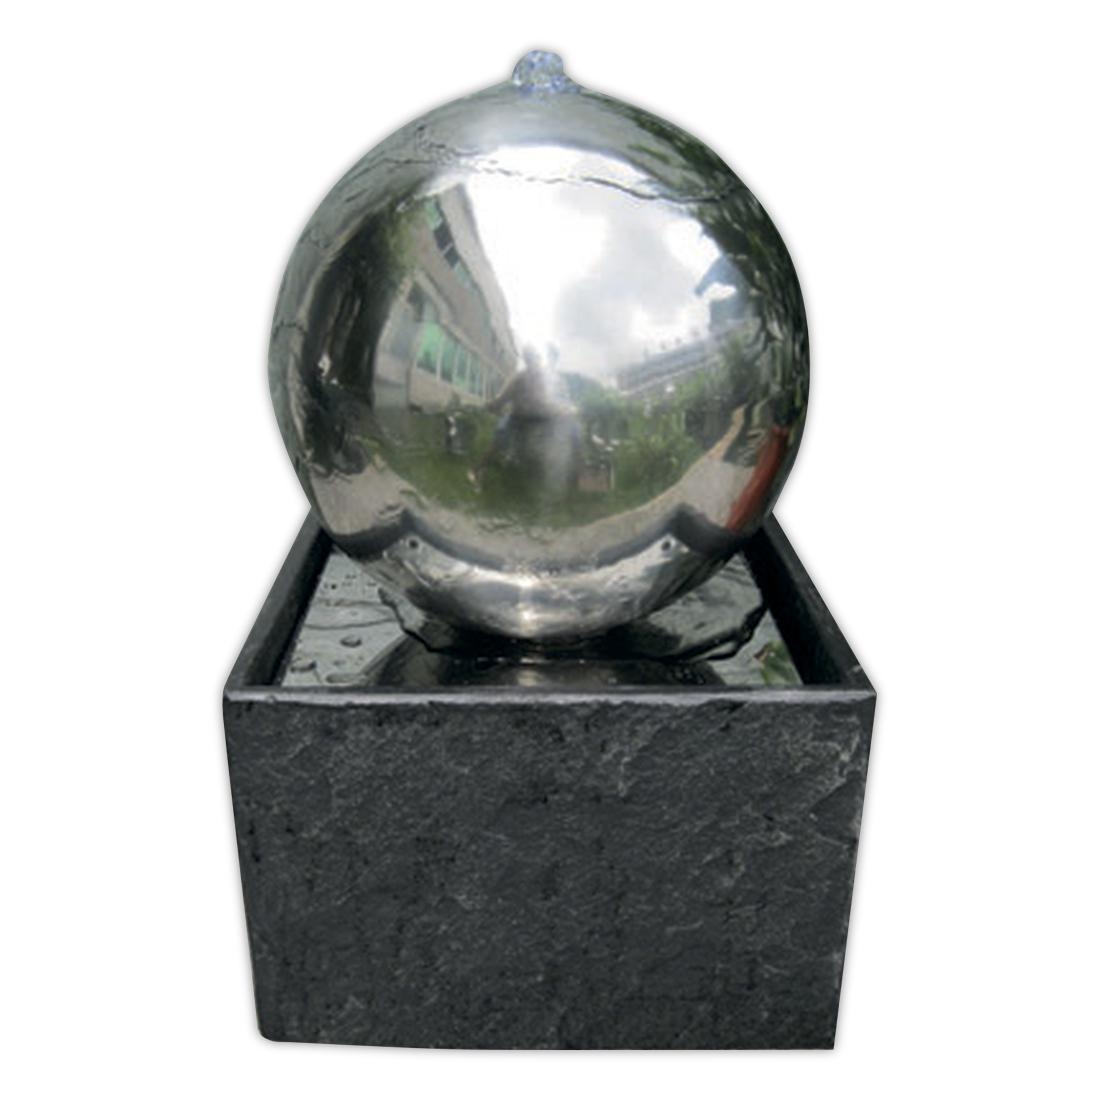 Adelaide stainless steel granite base garden water for Garden water features adelaide